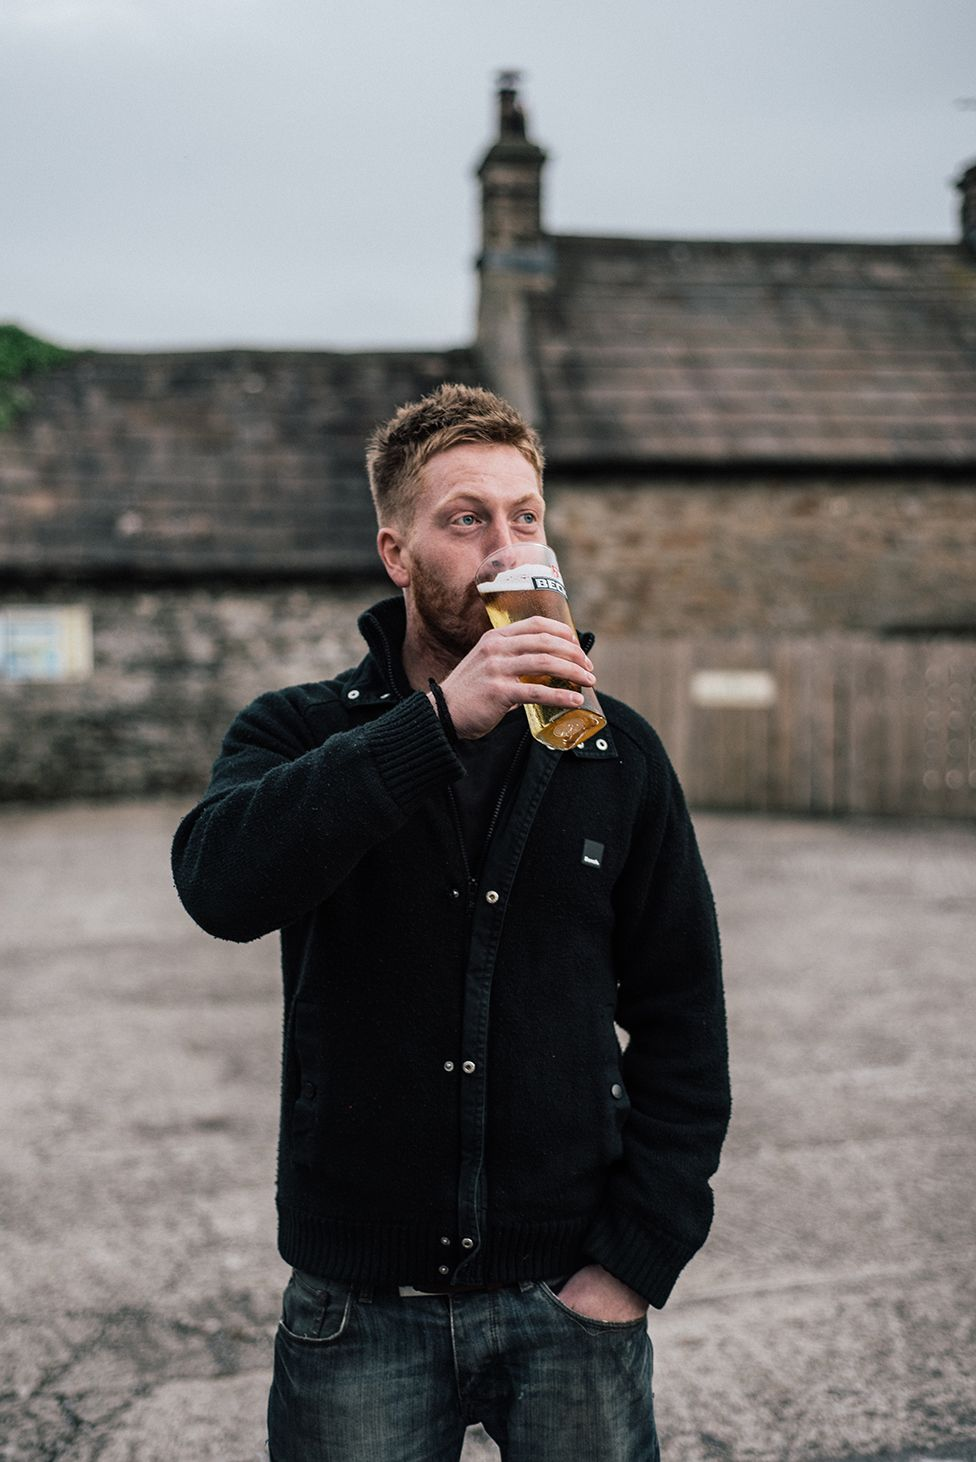 Farmer Jonny Spink was out at his local The Three Horseshoes in Wensley.